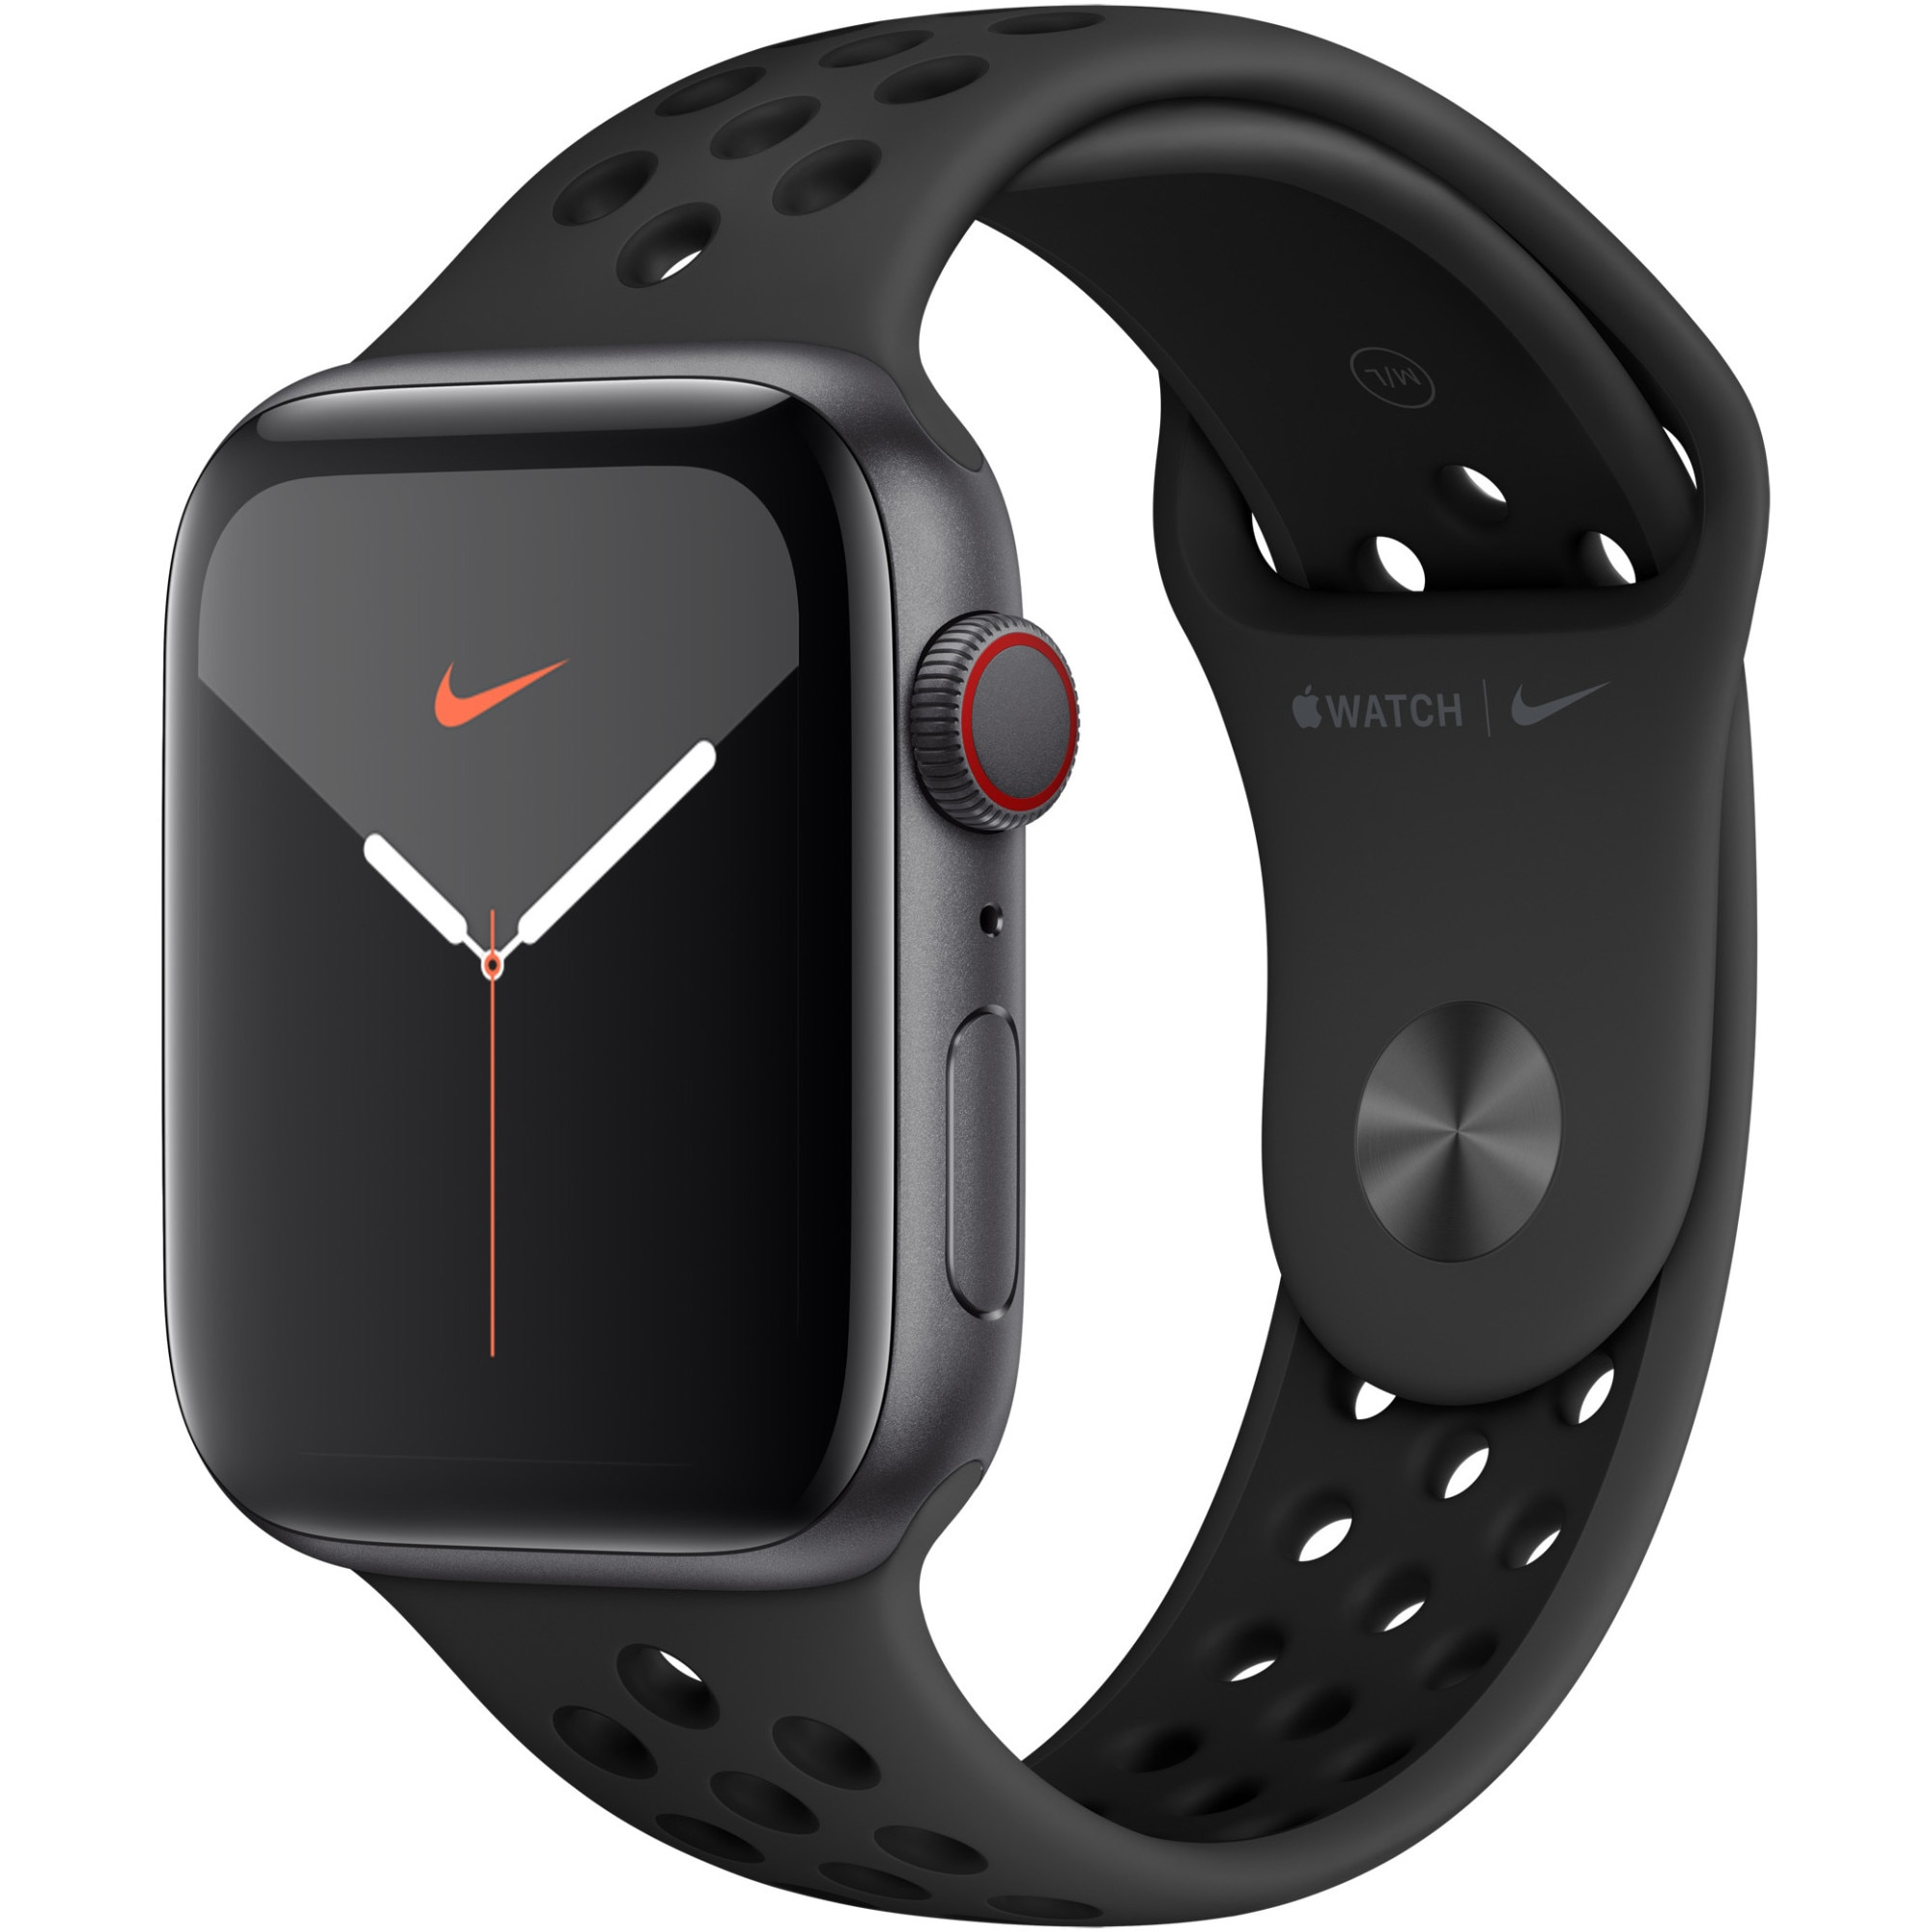 Fotografie Apple Watch Nike 5, GPS, Cellular, Carcasa Space Grey Aluminium 44mm, Anthracite/Black Nike Sport Band - S/M & M/L